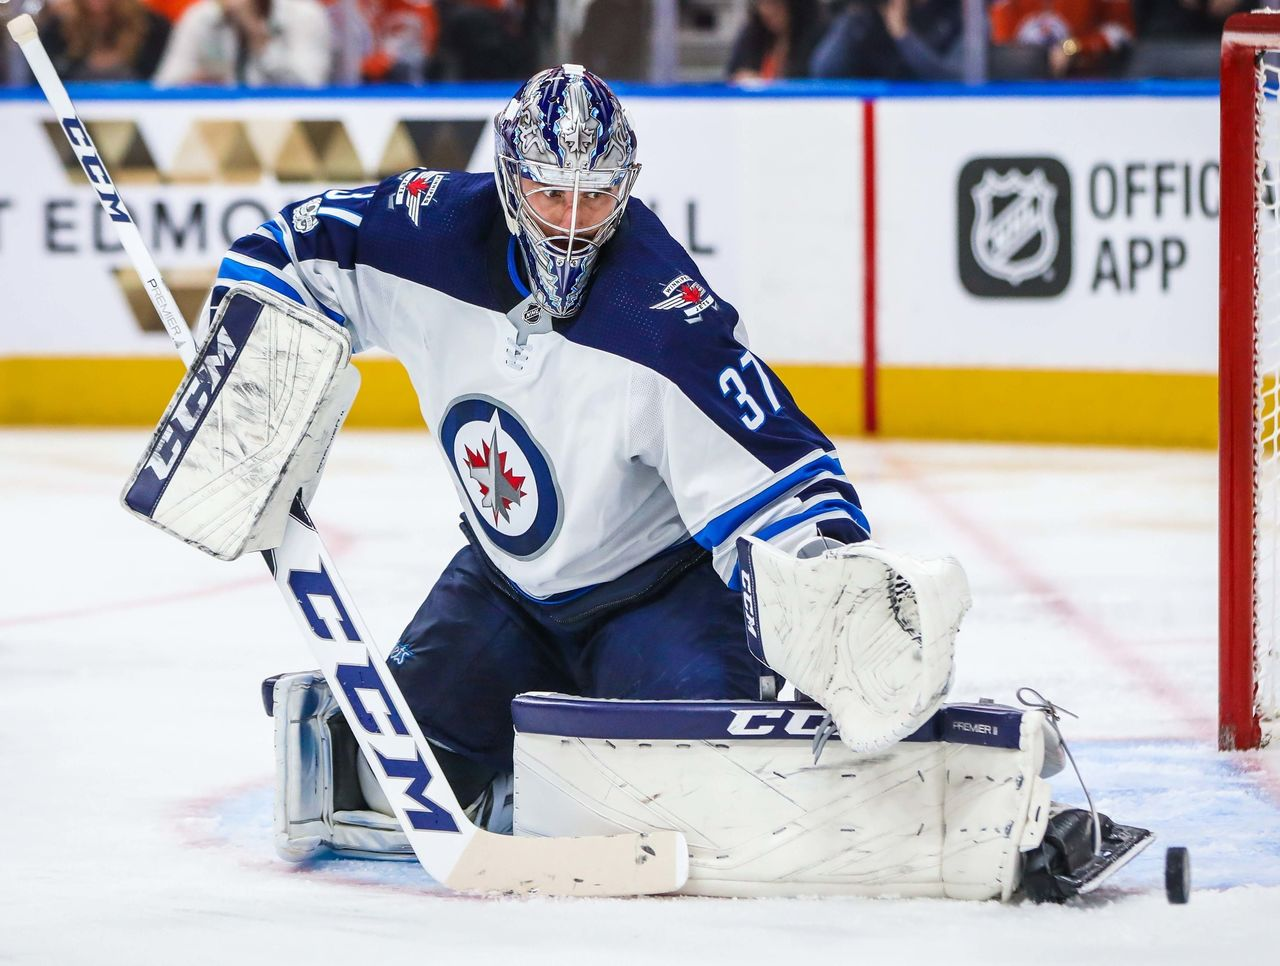 Cropped 2017 10 10t030612z 1018383676 nocid rtrmadp 3 nhl winnipeg jets at edmonton oilers